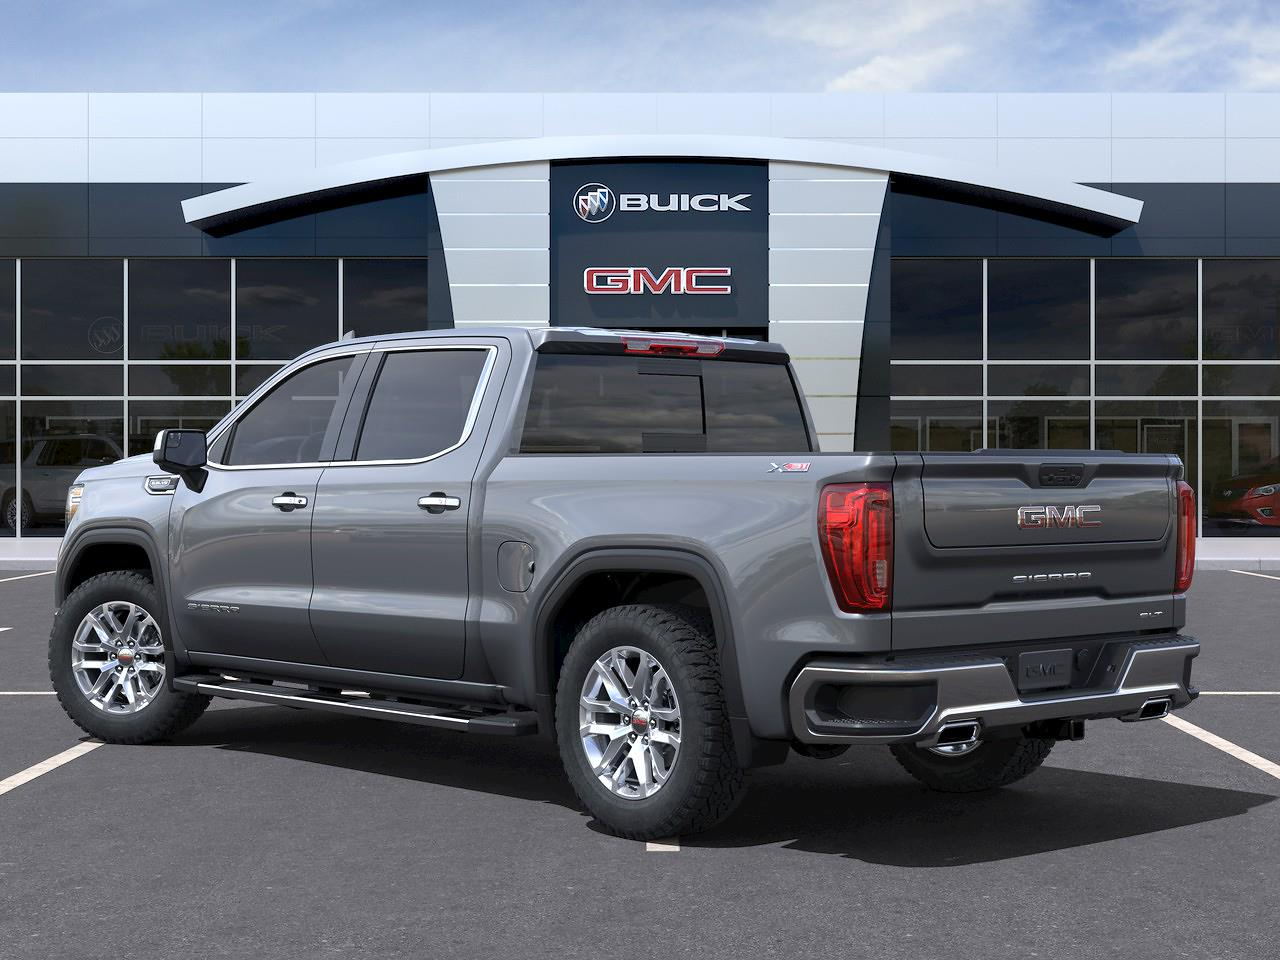 2021 GMC Sierra 1500 Crew Cab 4x4, Pickup #23617 - photo 4